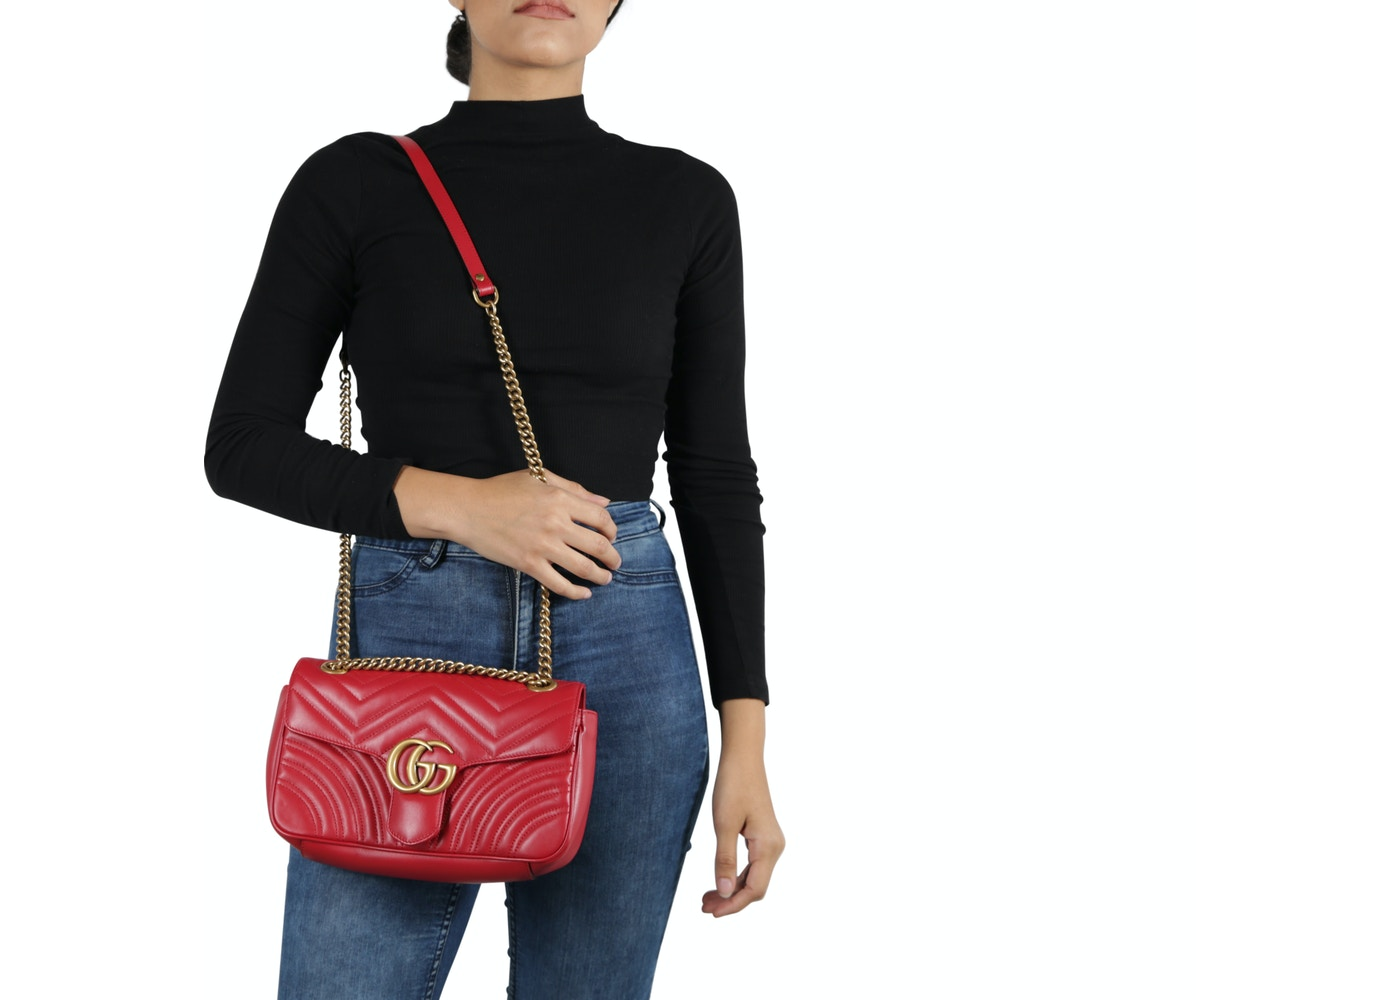 39551e2d807fb5 Gucci Marmont Shoulder Bag Matelasse Small Hibiscus Red